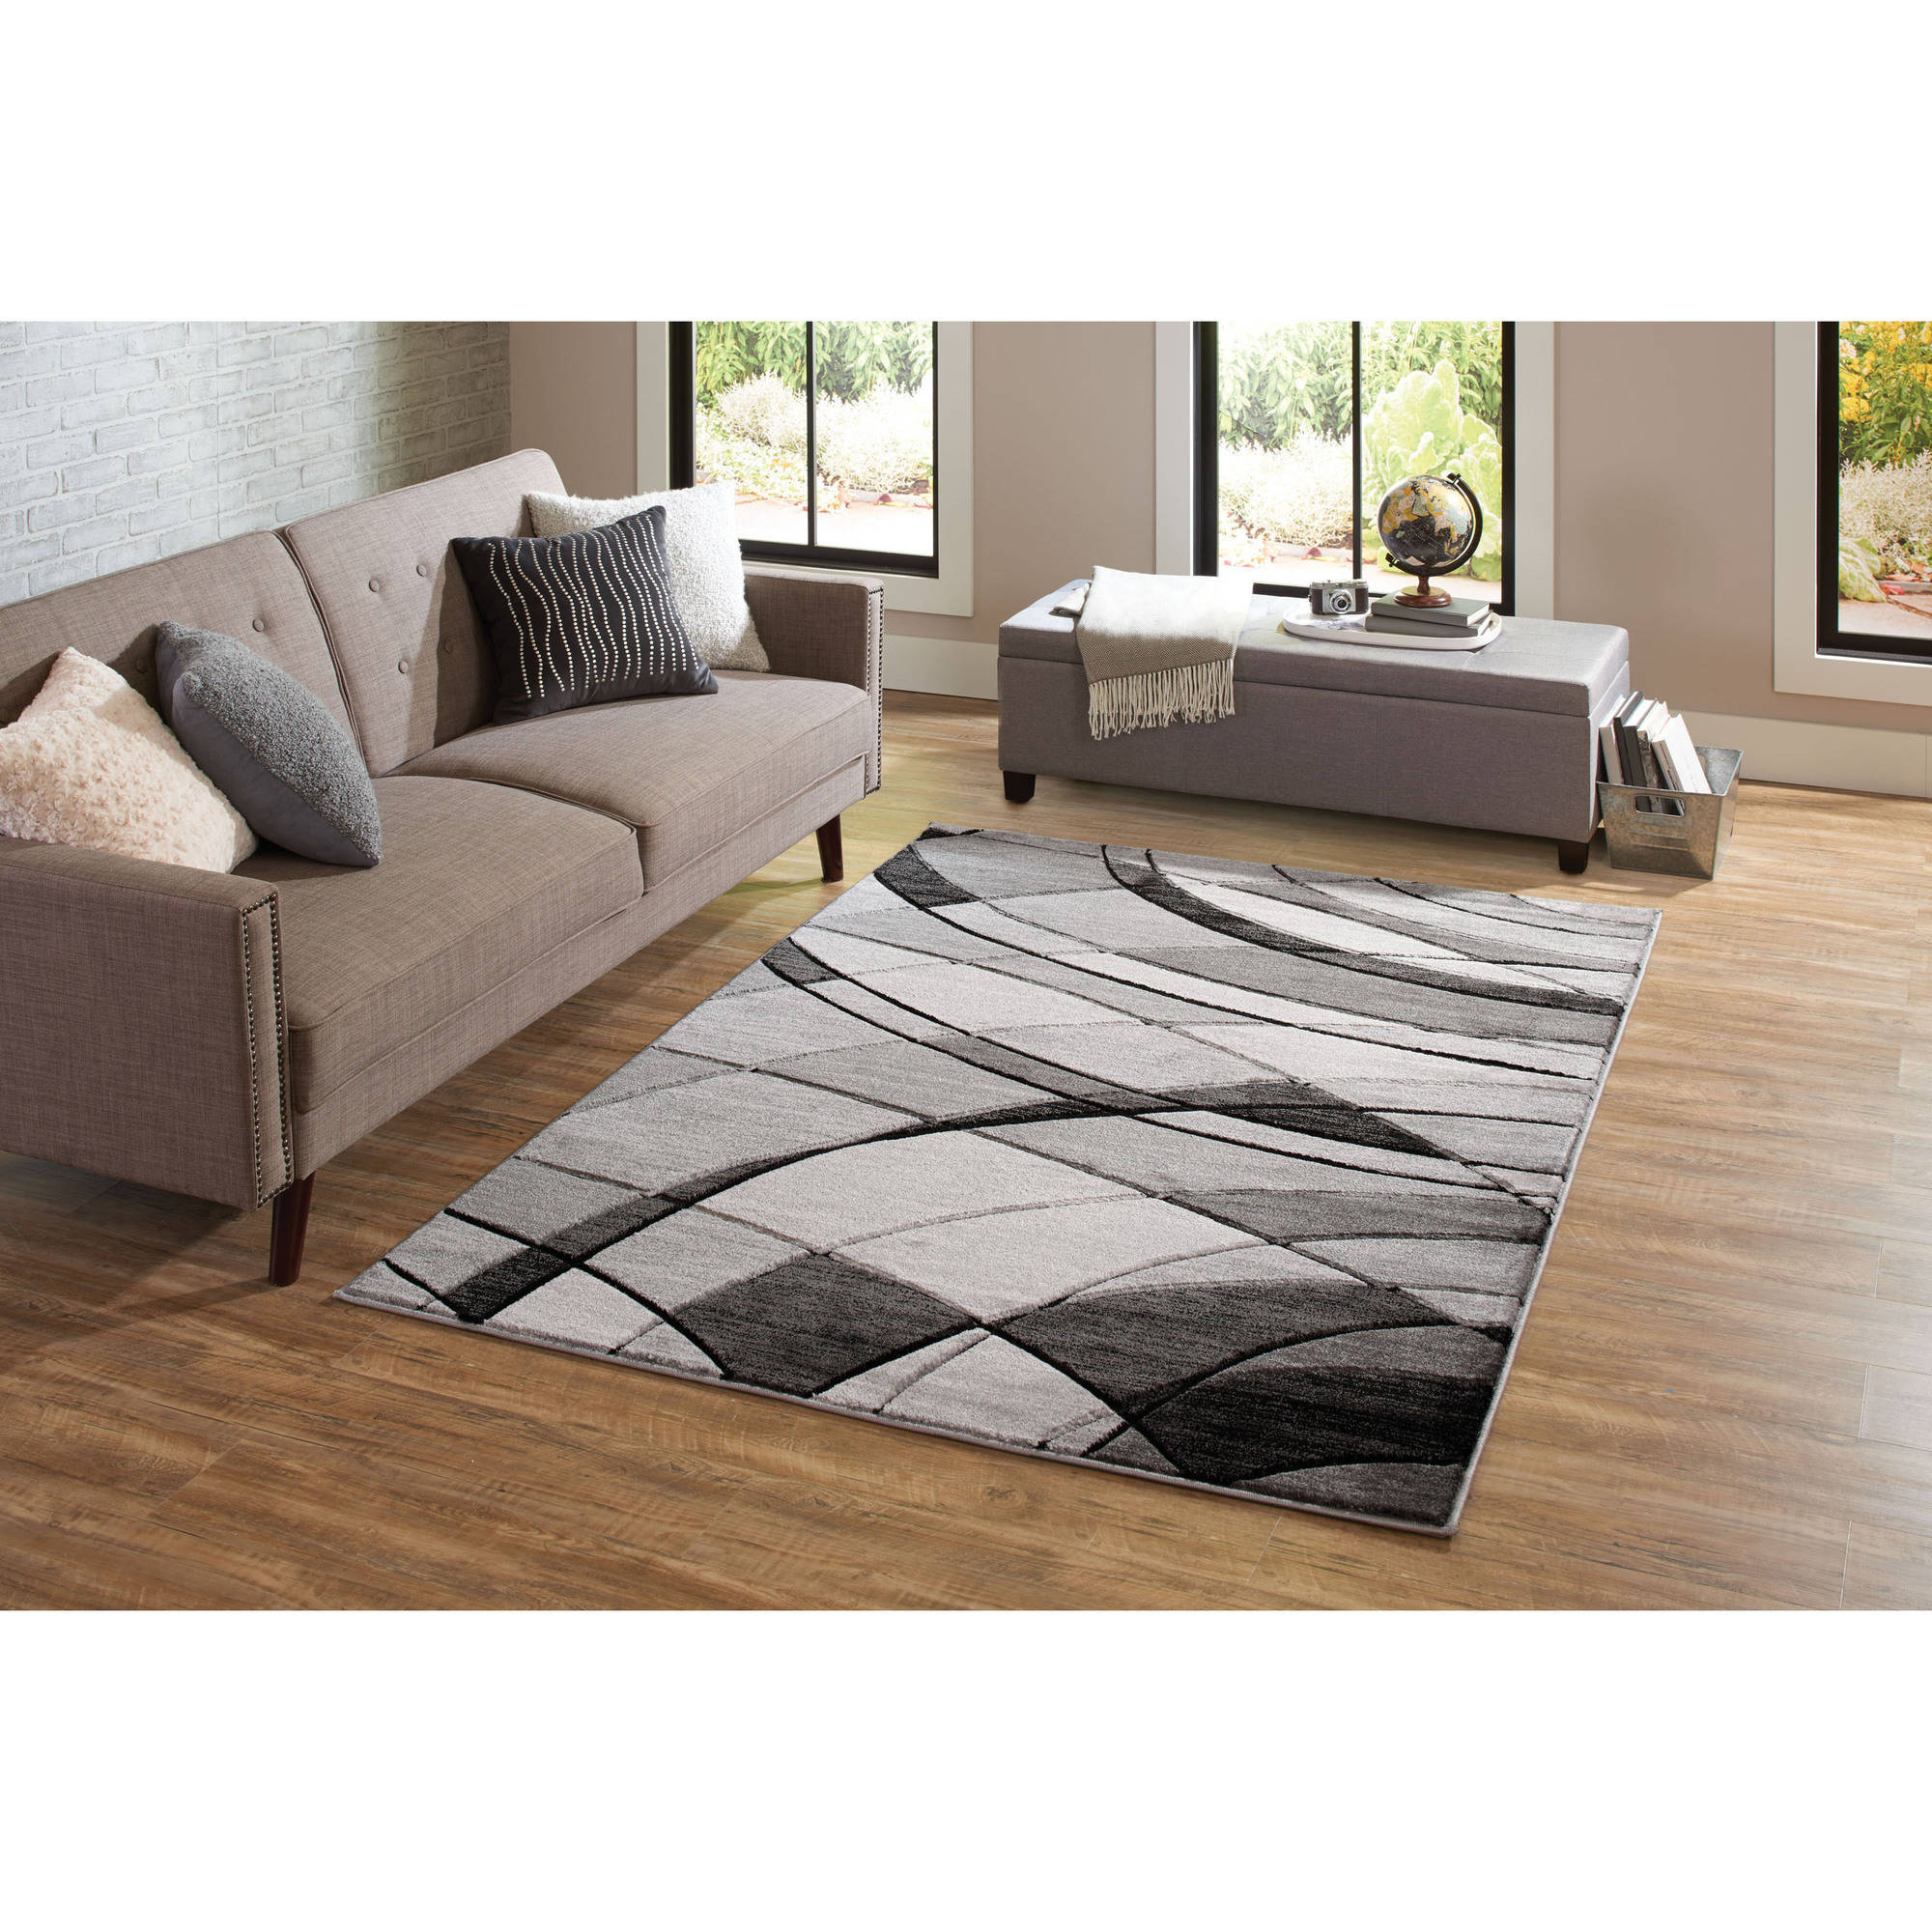 Better Homes Gardens Abstract Indoor Area Rug Gray 5 X7 Walmart Com Walmart Com